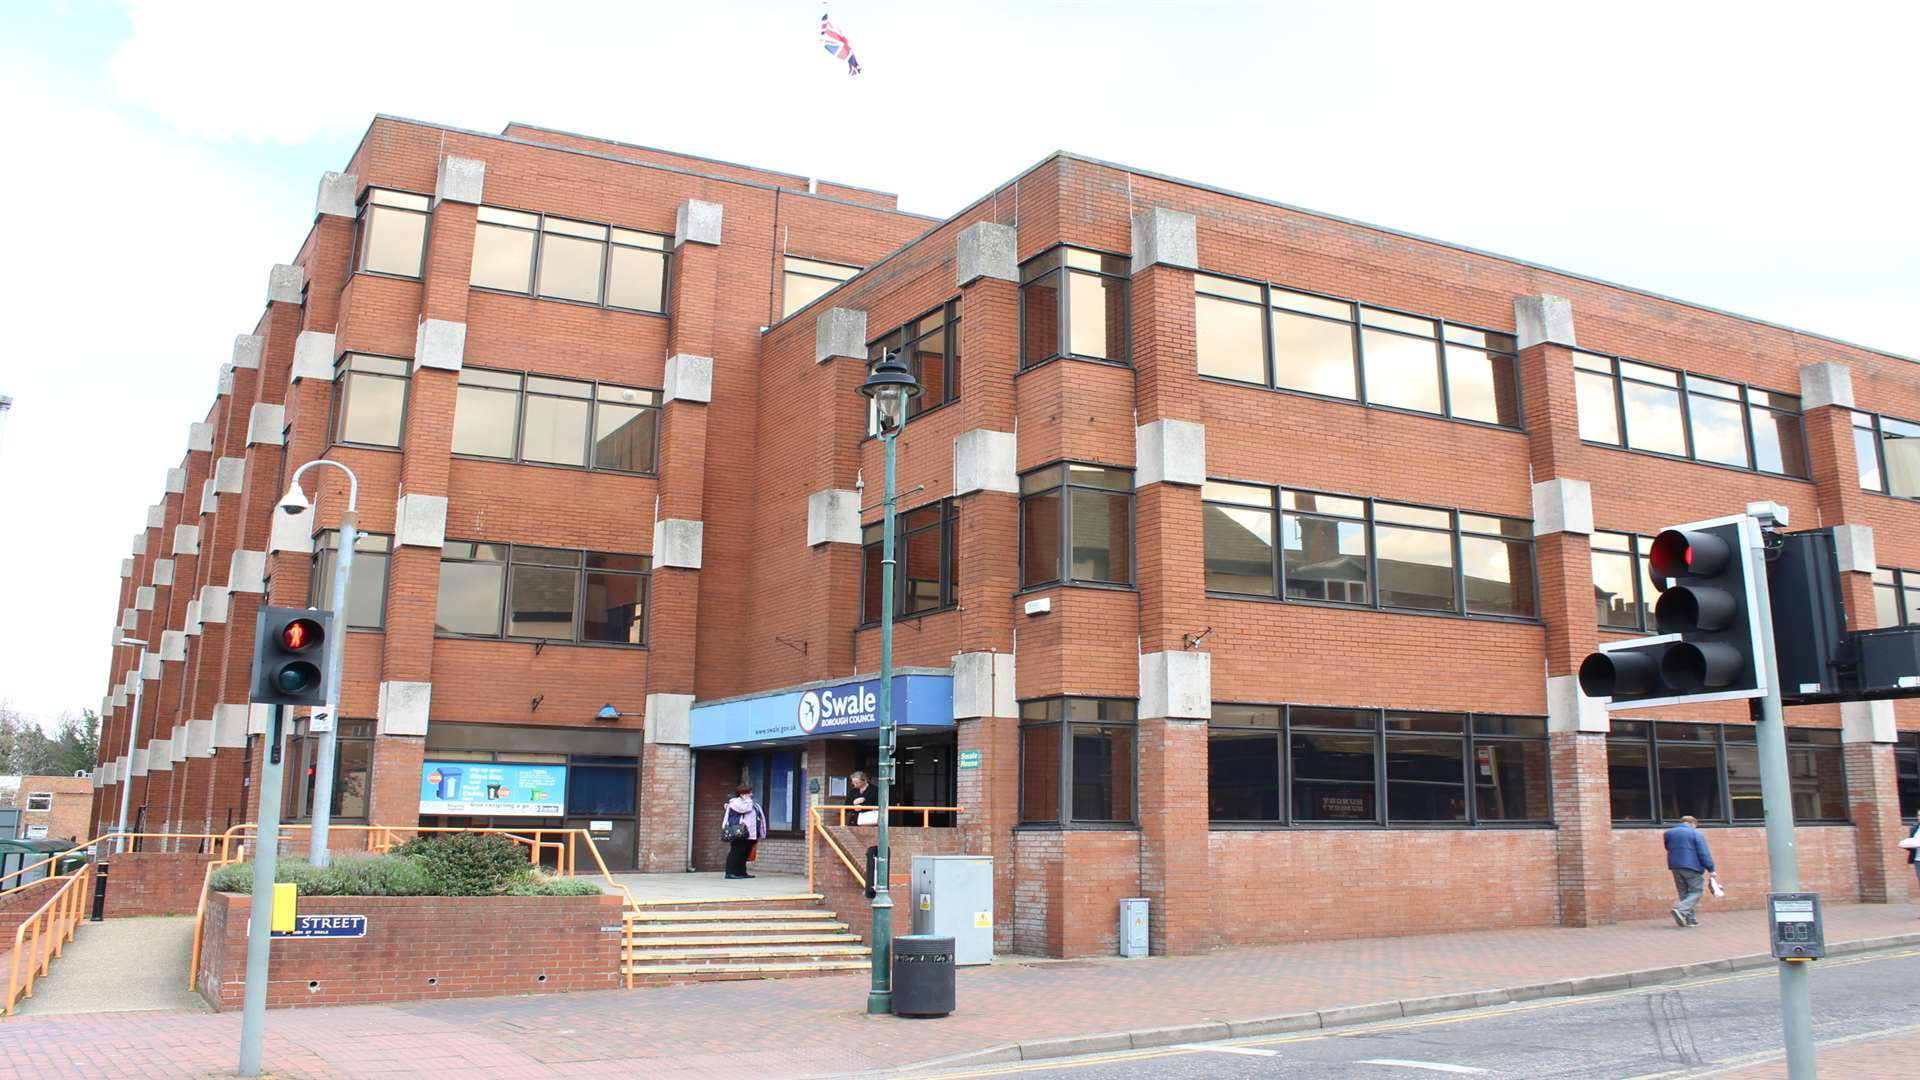 Swale House, headquarters of Swale Borough Council in East Street, Sittingbourne